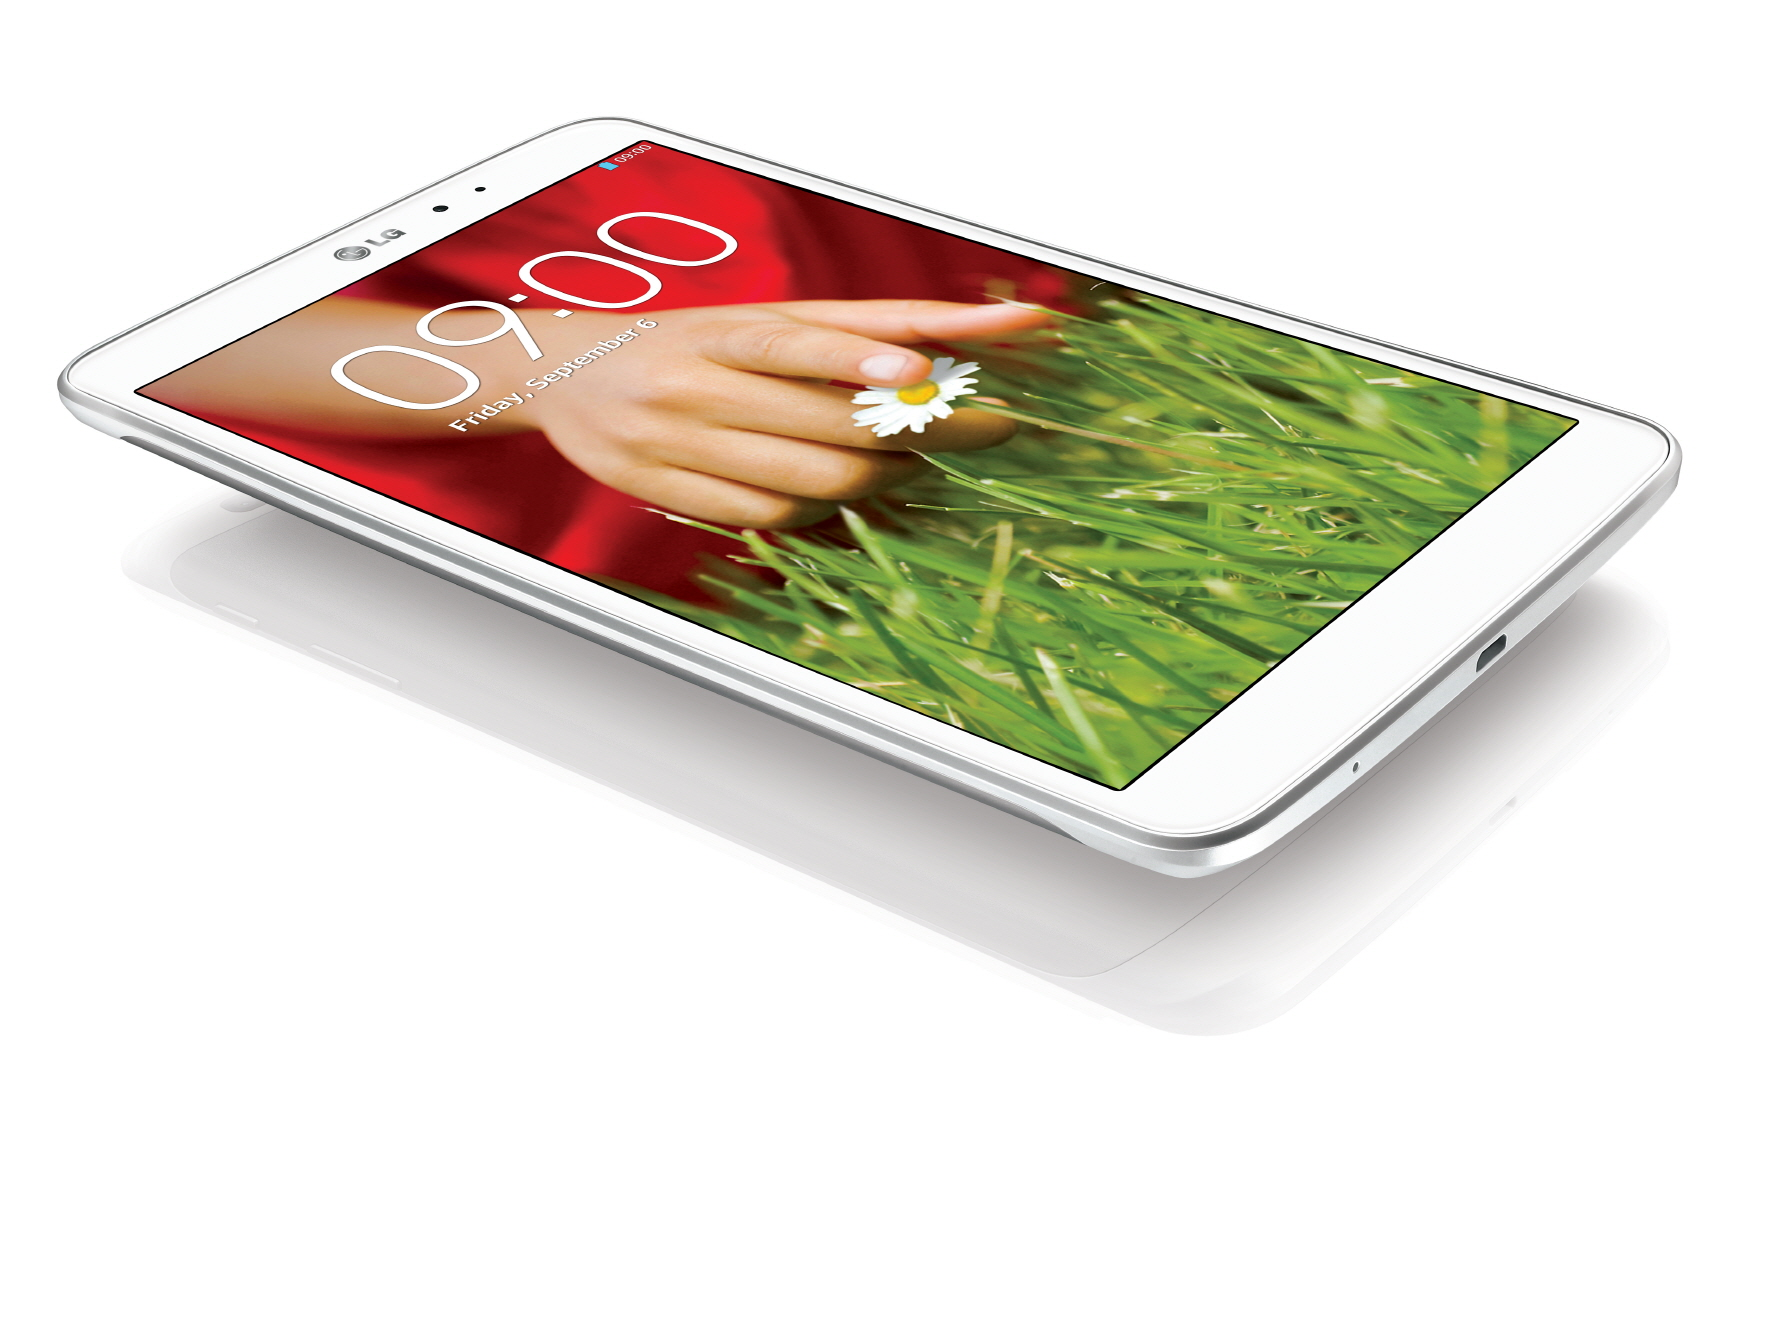 LG Dives Back Into Tablet Market With Eight-Inch G Pad